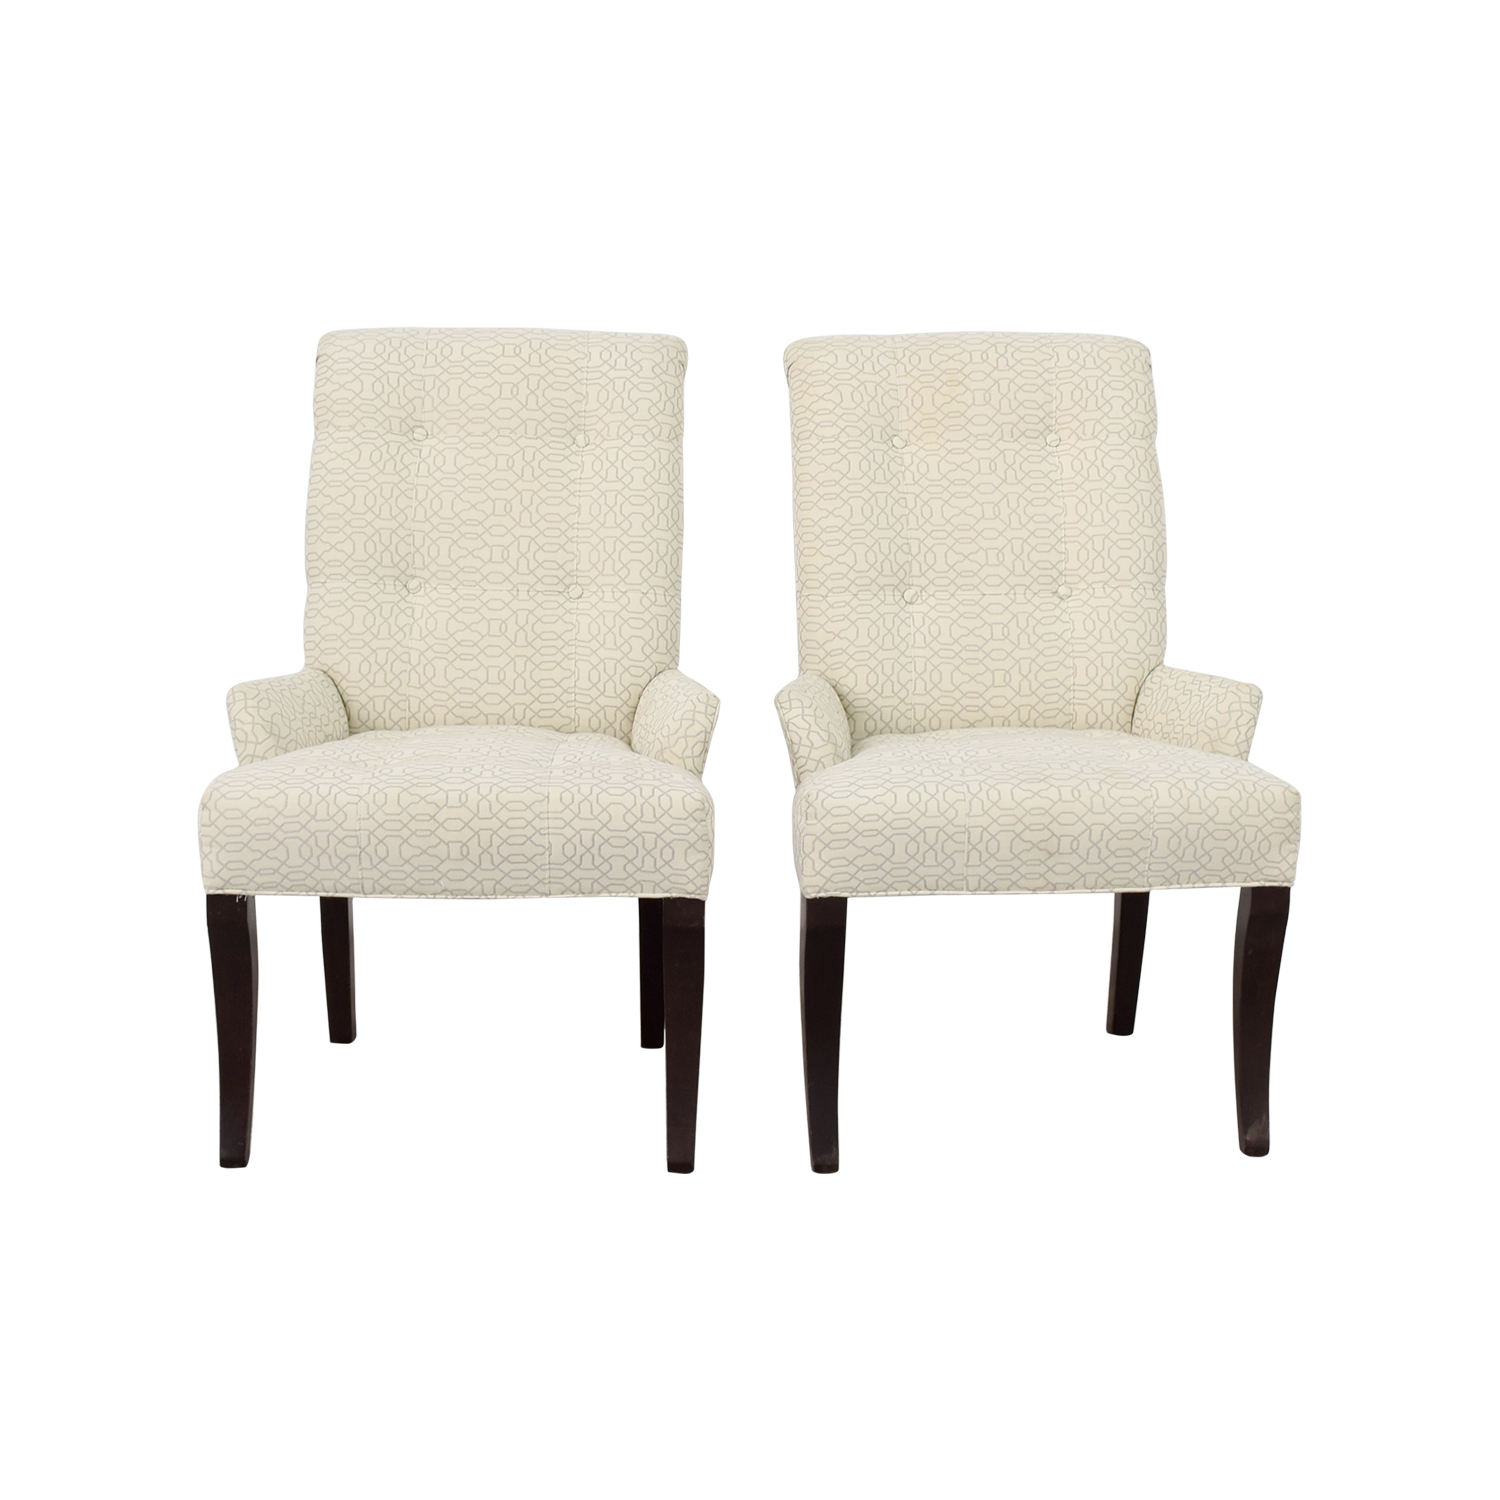 Ethan Allen Ethan Allen Jaqueline White Accent Chair price